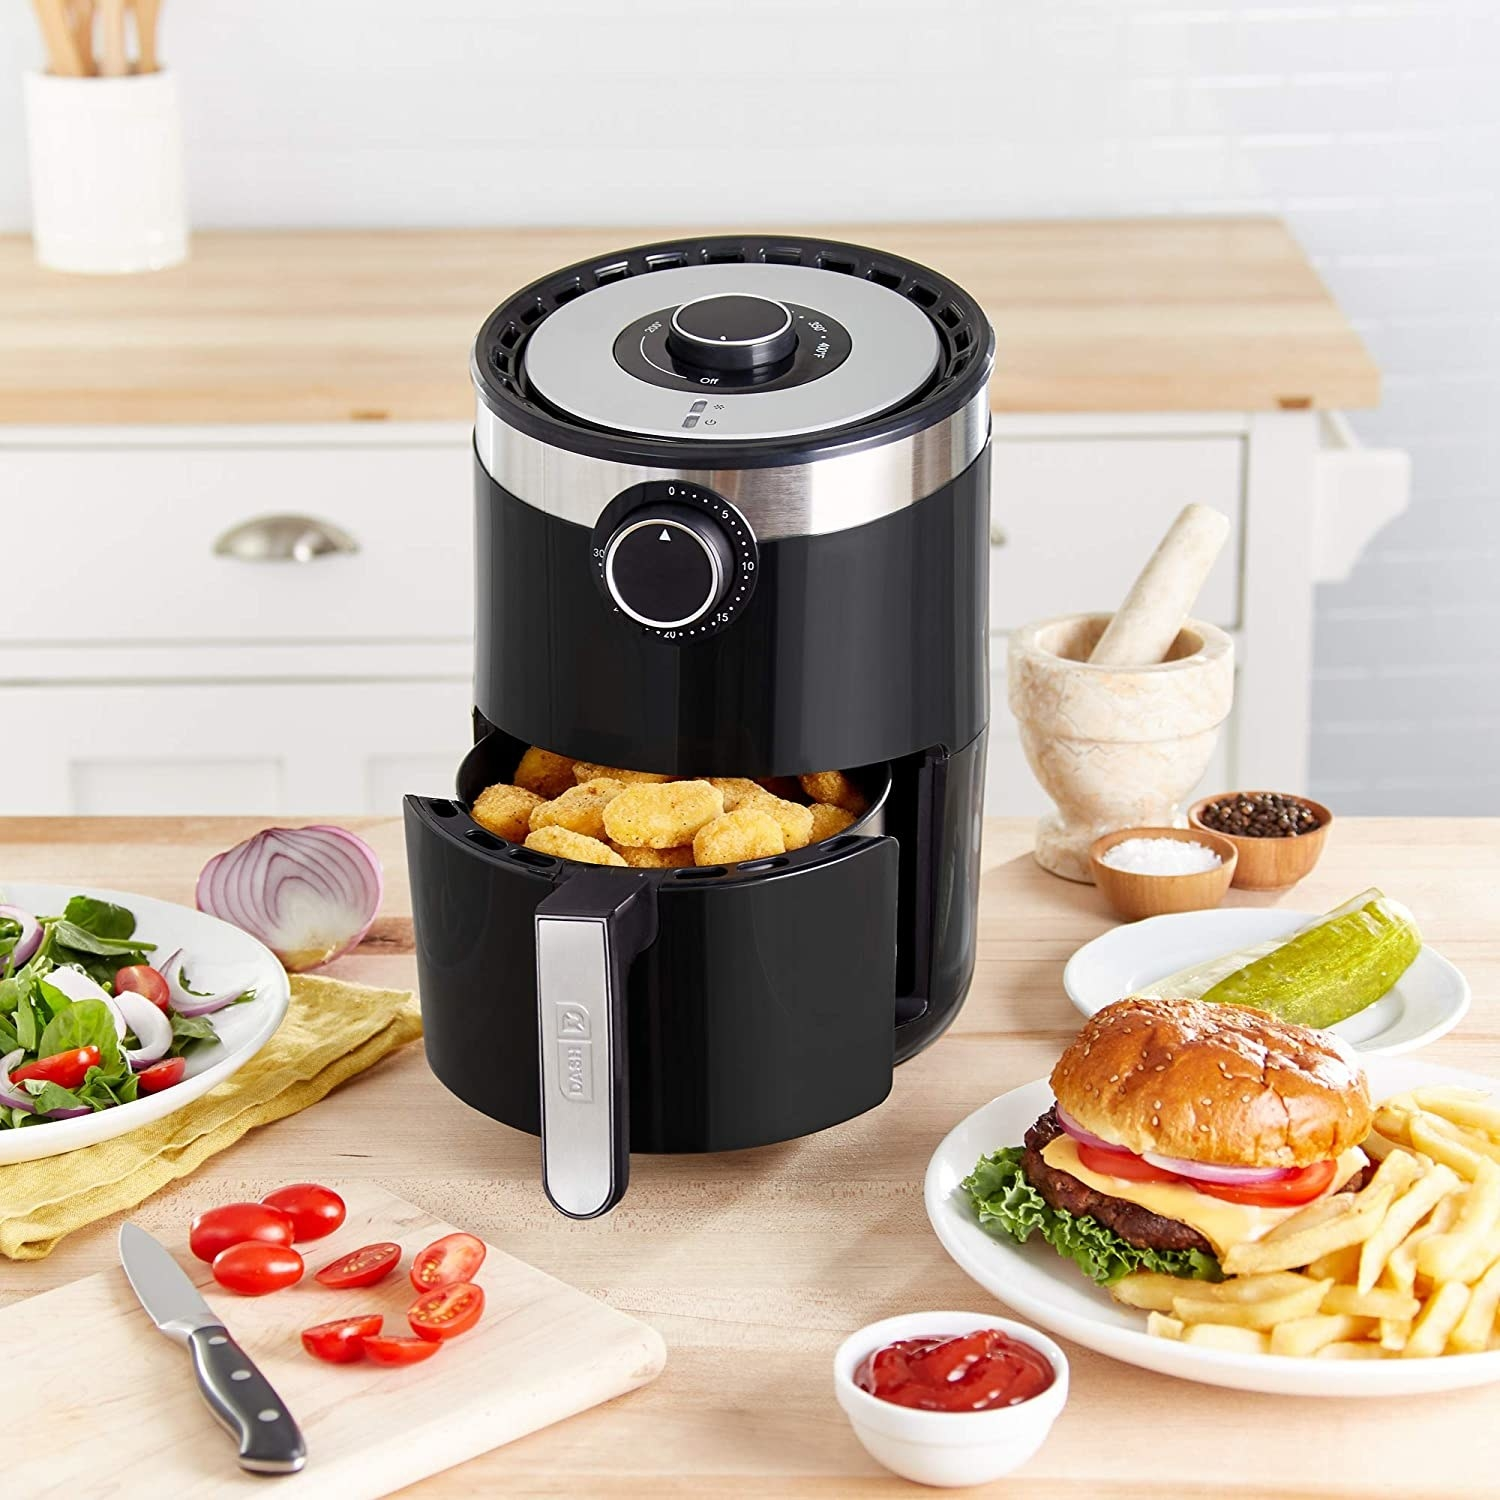 The cylindrical air fryer in black, featuring an analog timer, temperature dial, and handle on the cooking basket